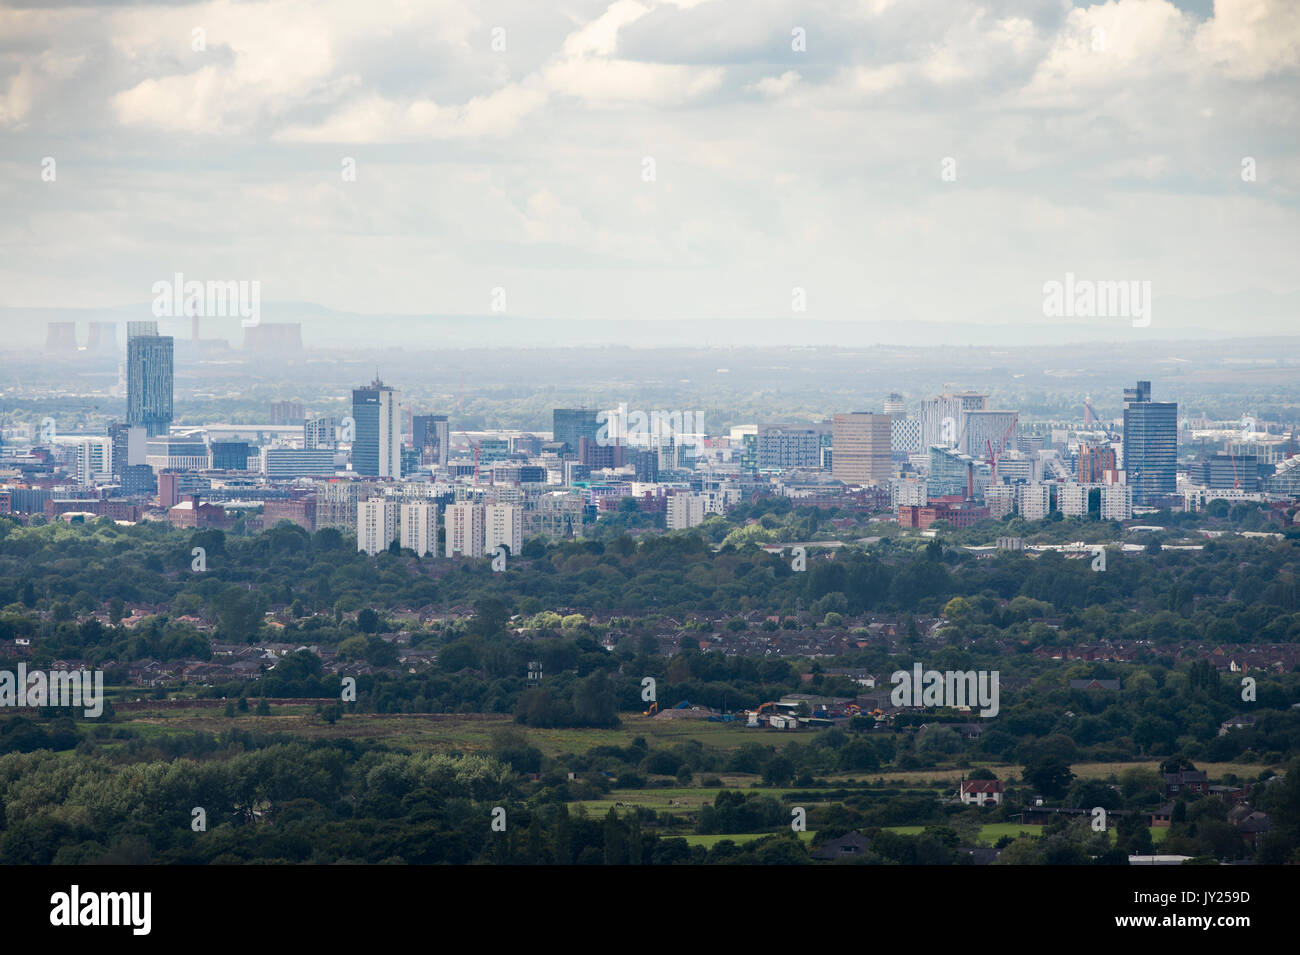 A view of Manchester City Centre from the vantage point of Hartshead Pike, Mossley, in Saddleworth, UK - Stock Image